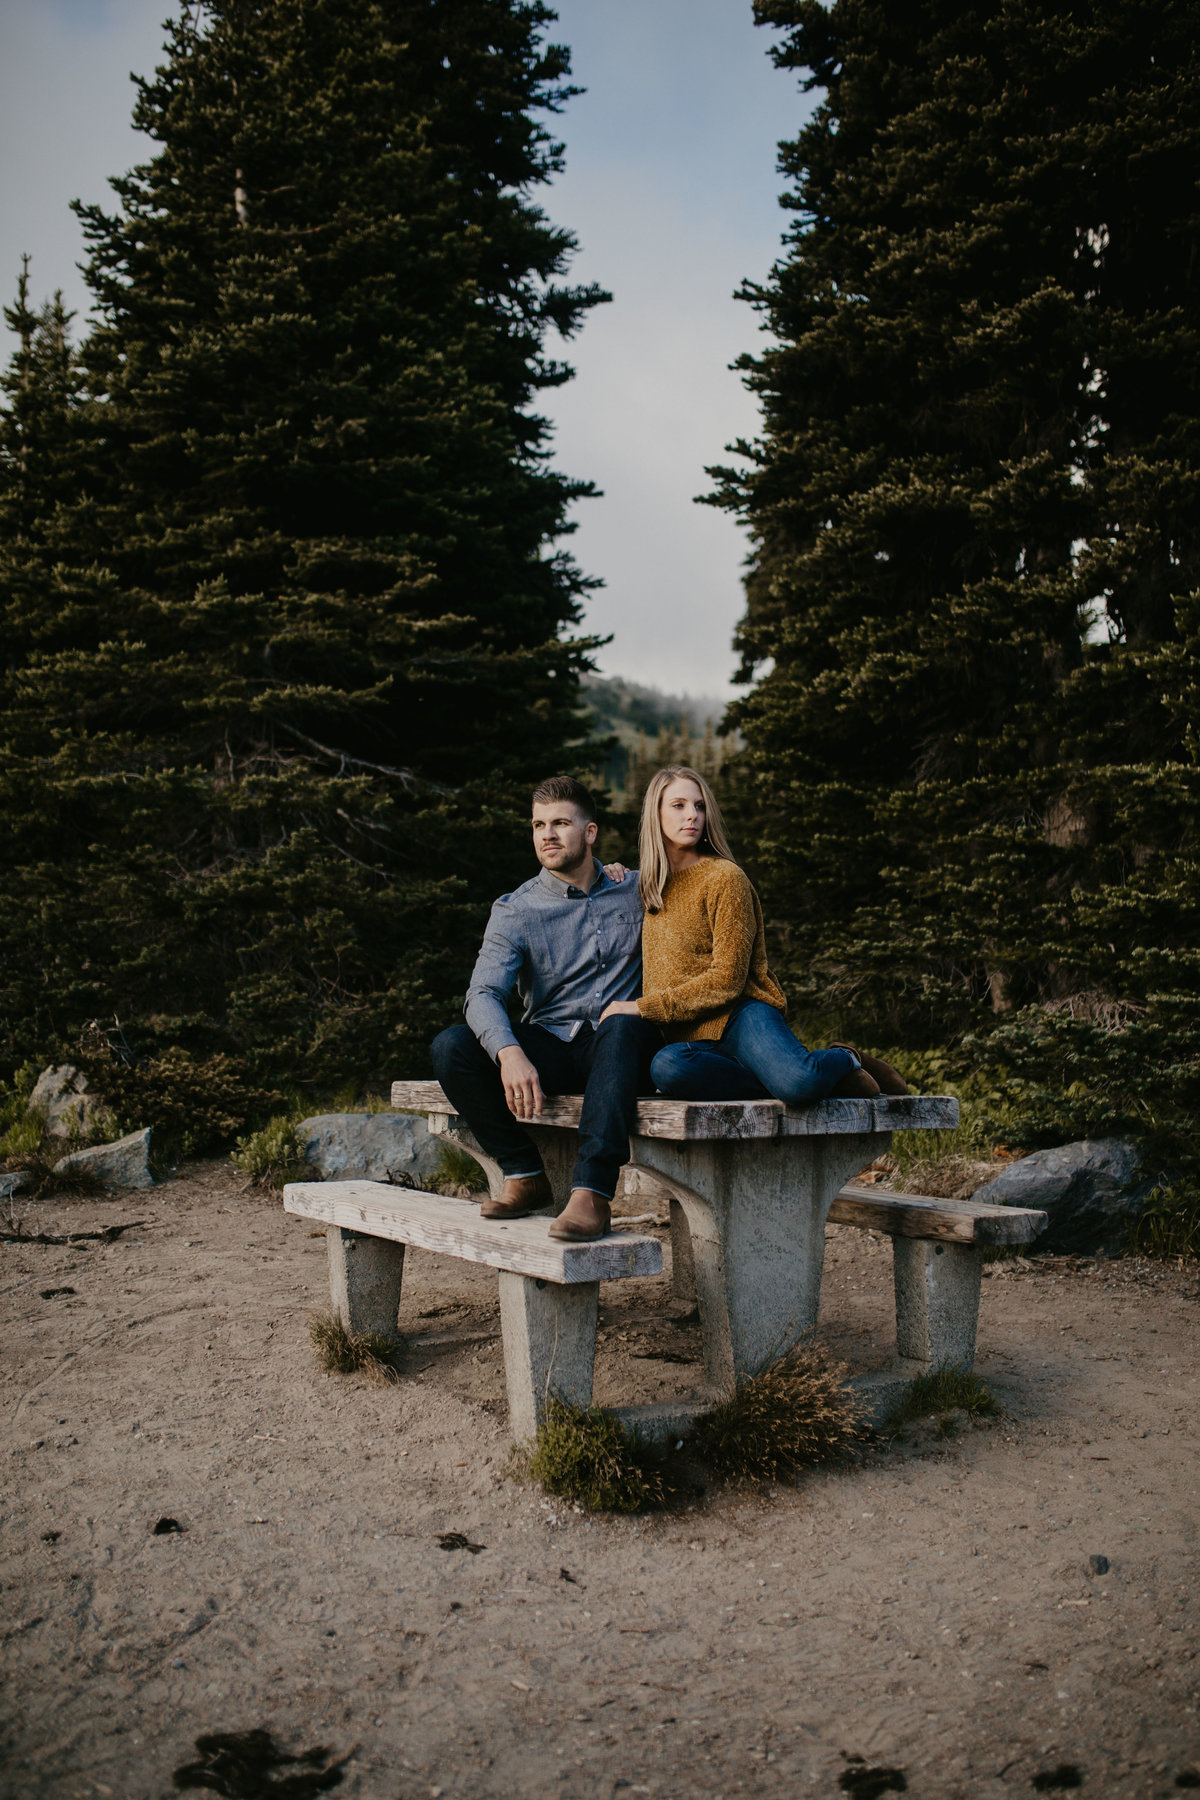 Marnie_Cornell_Photography_Engagement_Mount_Rainier_RK-146